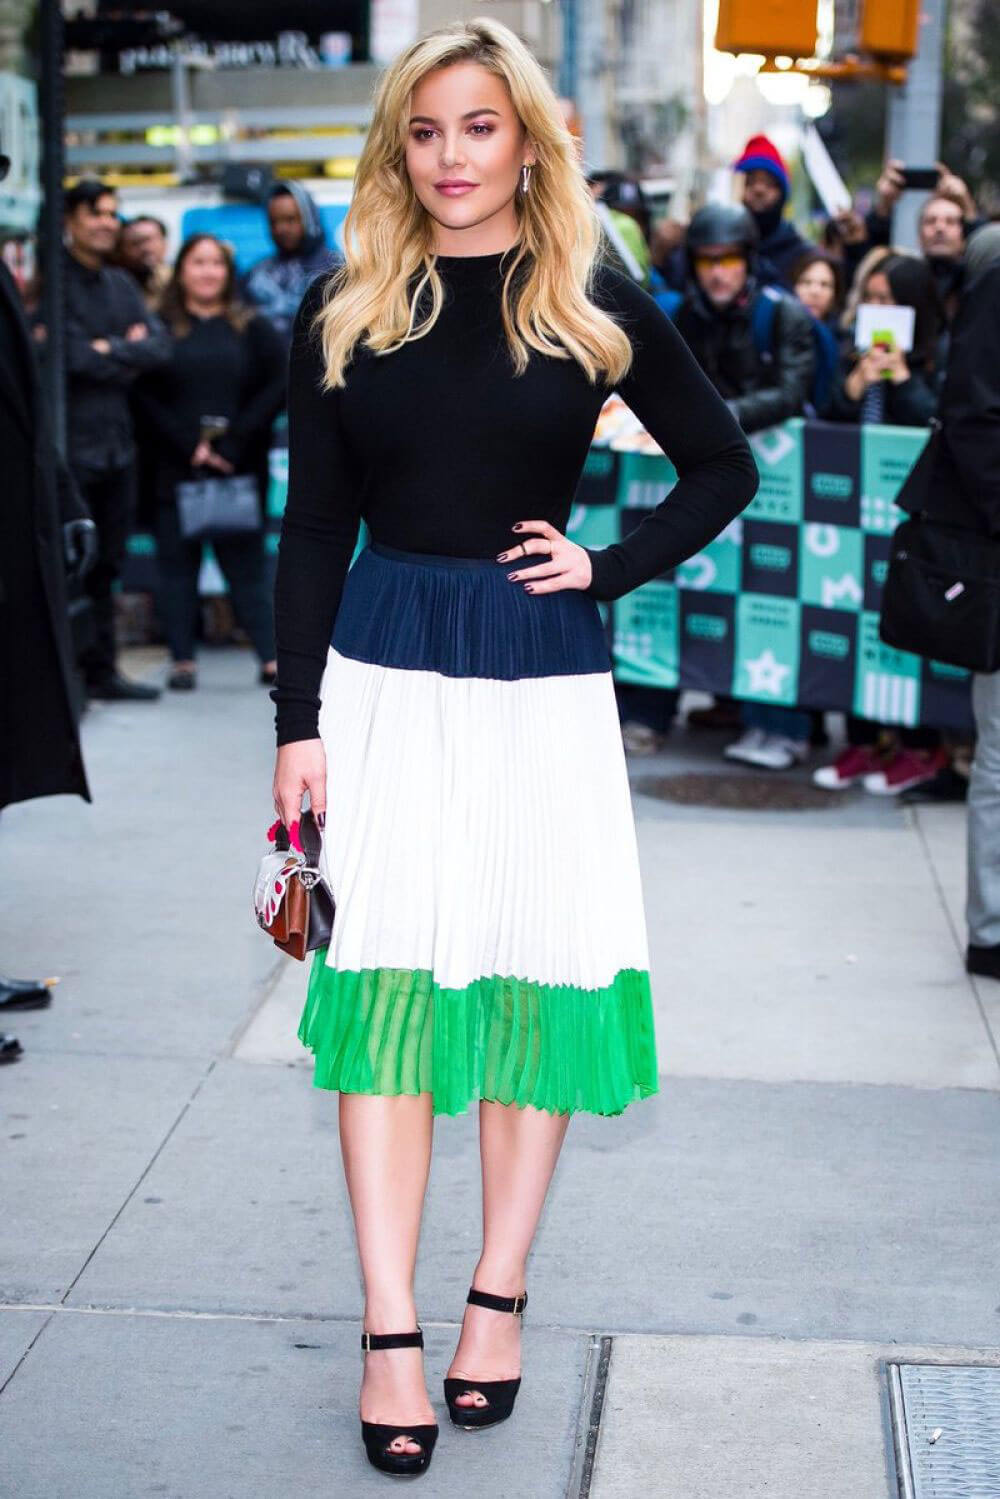 Abbie Cornish Stills at AOL Build Series in New York Images